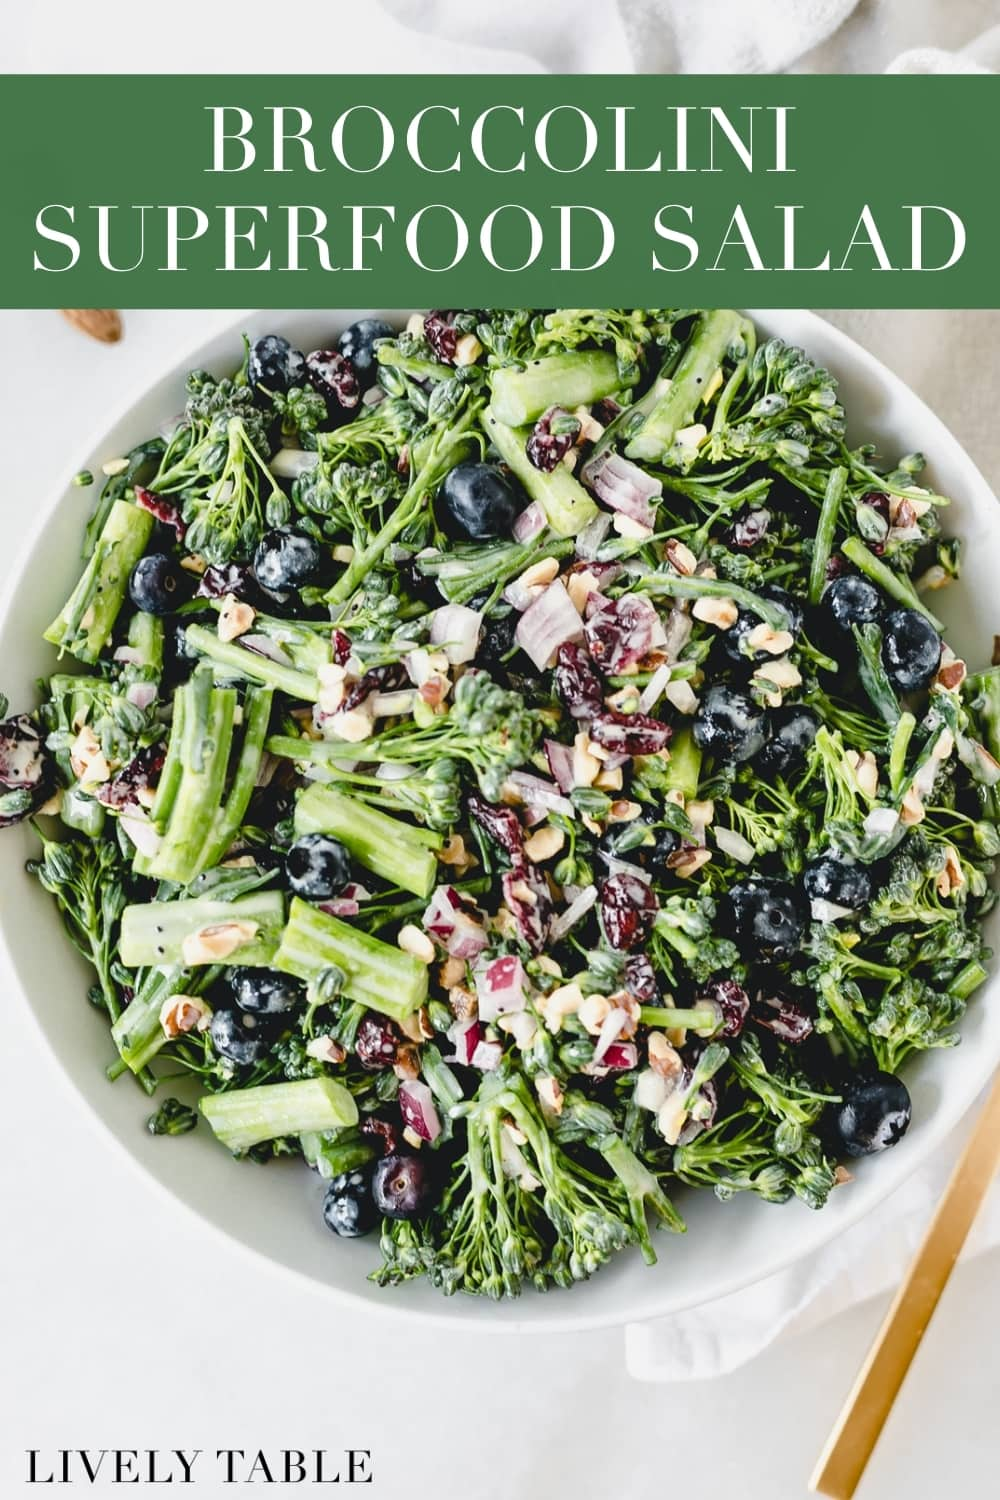 This fresh superfood broccolini salad is a delicious, antioxidant-packed side dish that is perfect for all of your summer meals and cookouts! #vegan #glutenfree #vegetarian #superfood #broccolini #salad #easymeal #easyrecipe #summerrecipe #almonds